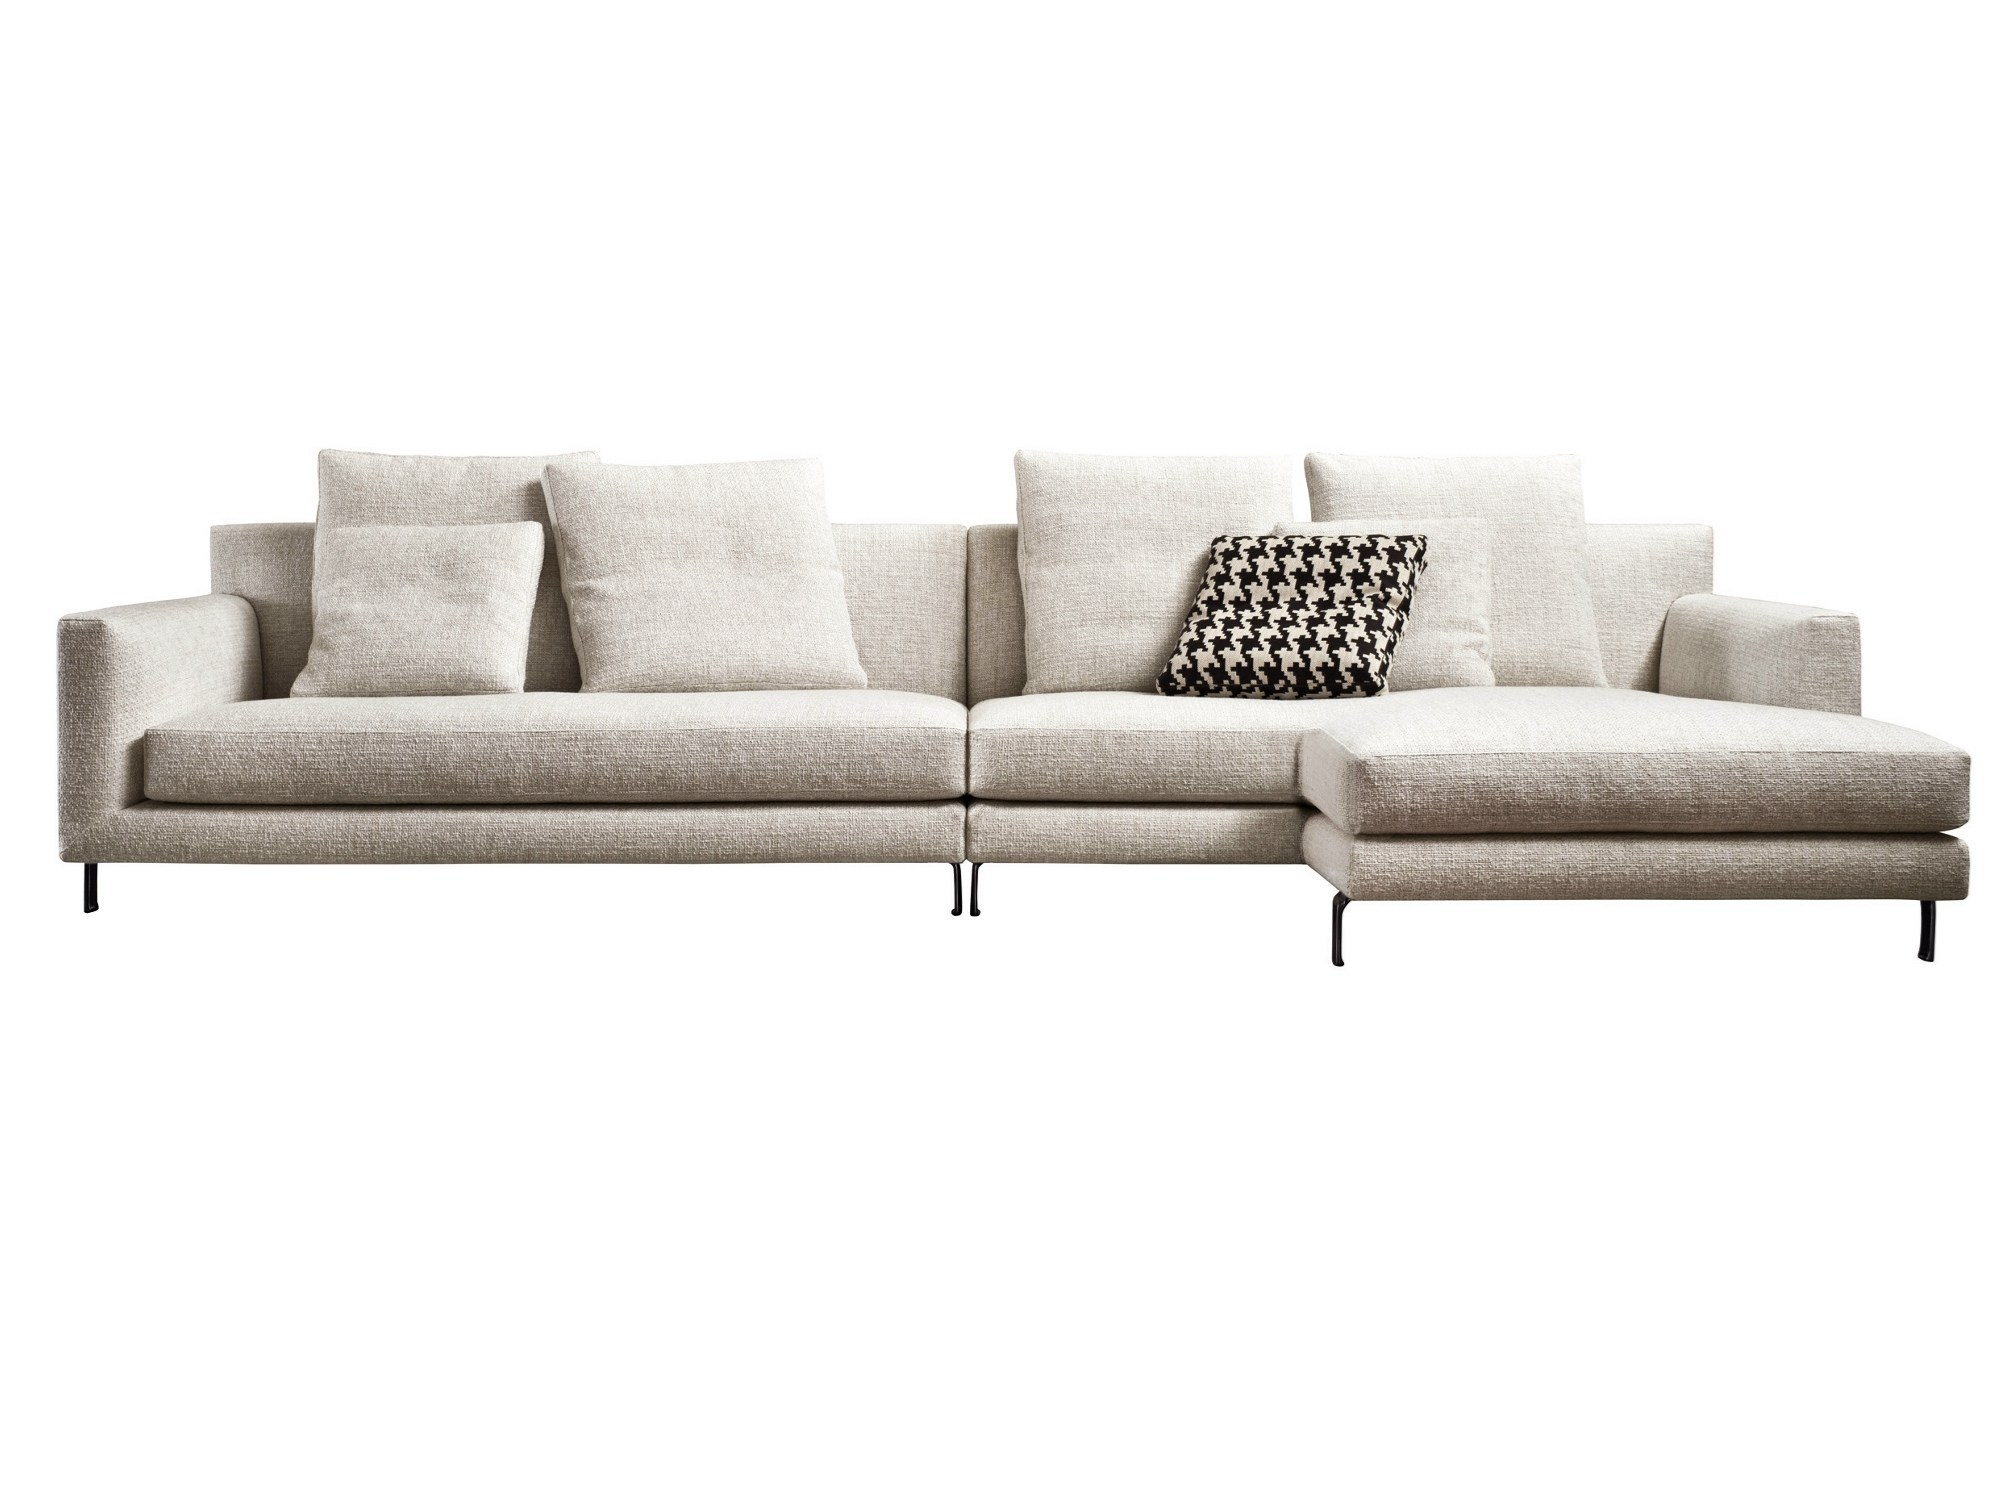 Full Size of Minotti Sofa Allen By Big Leder Altes Breit Franz Fertig Home Affaire Polsterreiniger Jugendzimmer Recamiere Bezug Weiß Grau Megapol 2er Tom Tailor Lila Sofa Minotti Sofa